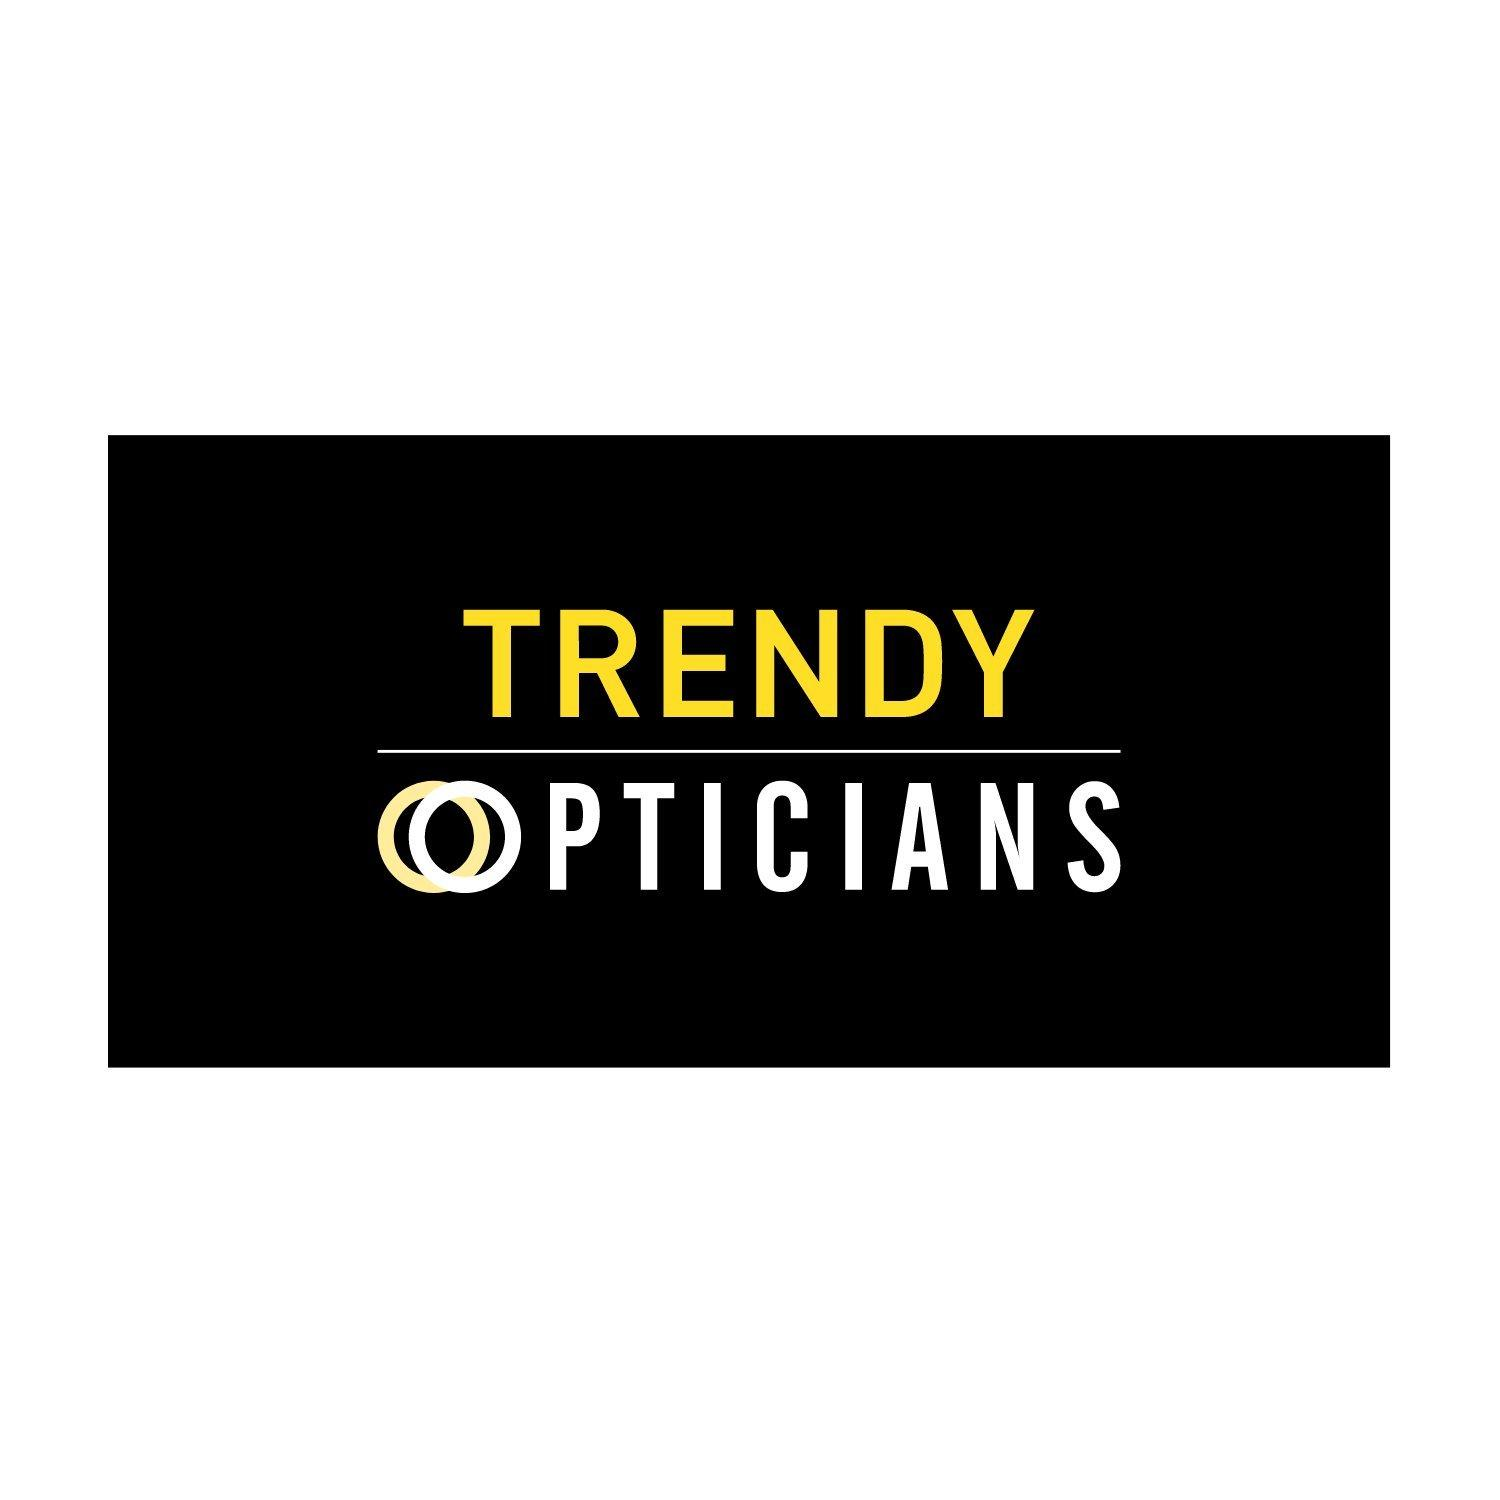 Trendy Opticions - logo